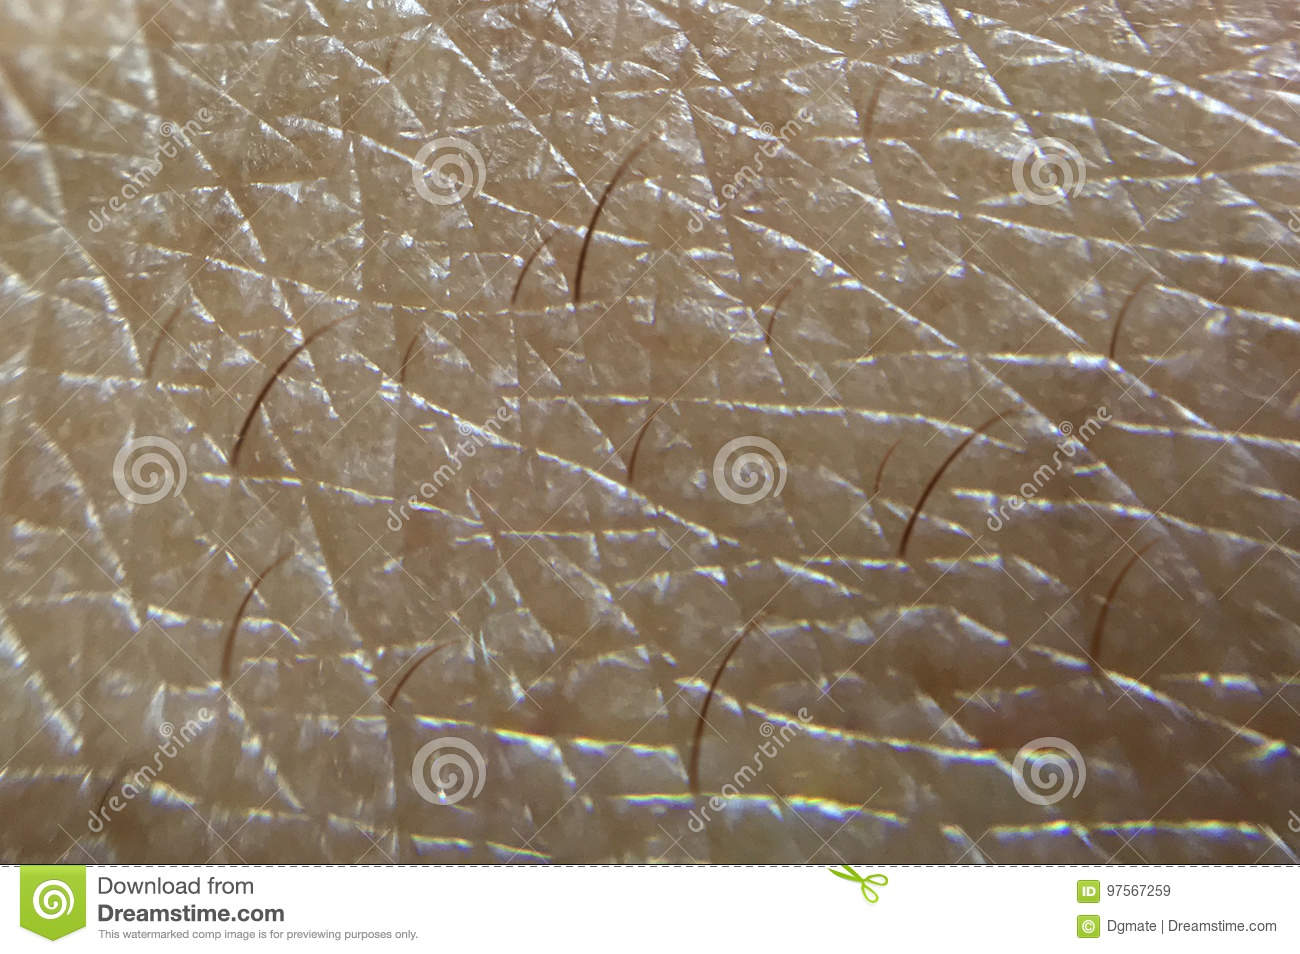 Human Skin close up shot